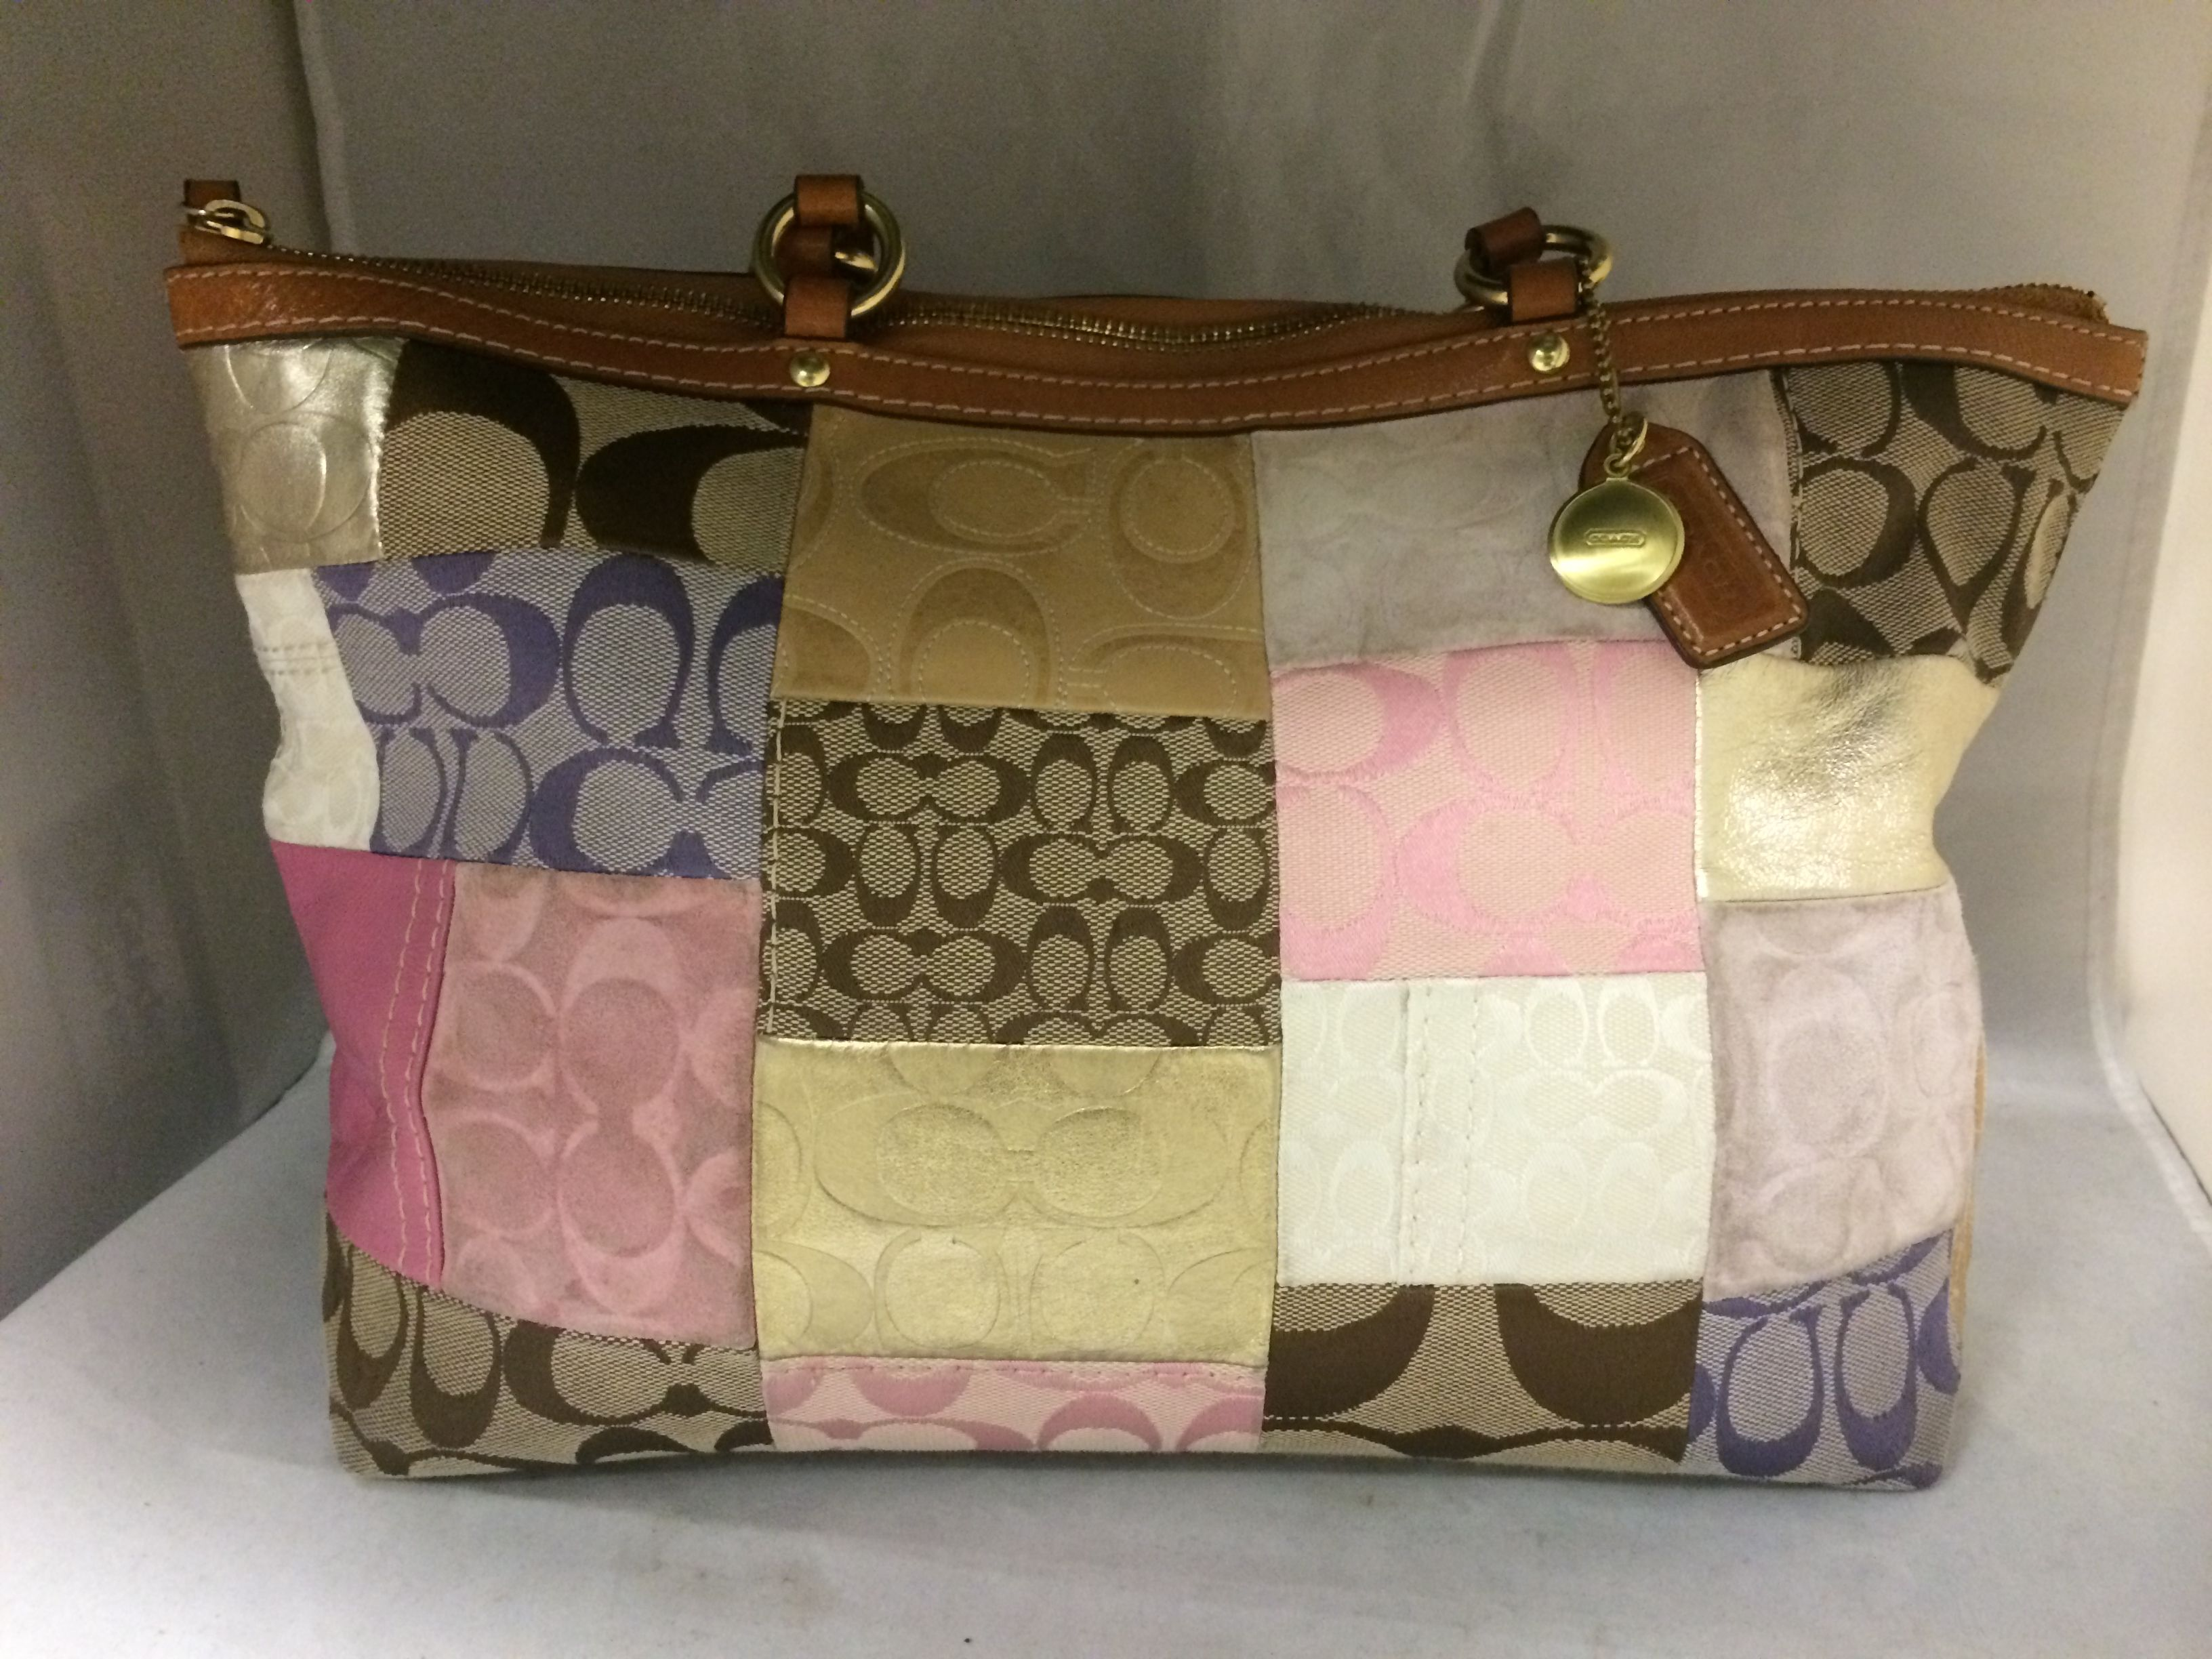 Patchwork Coach Purse 11711 Sold Was Available At Gadgets Gold In Gainesville Fl